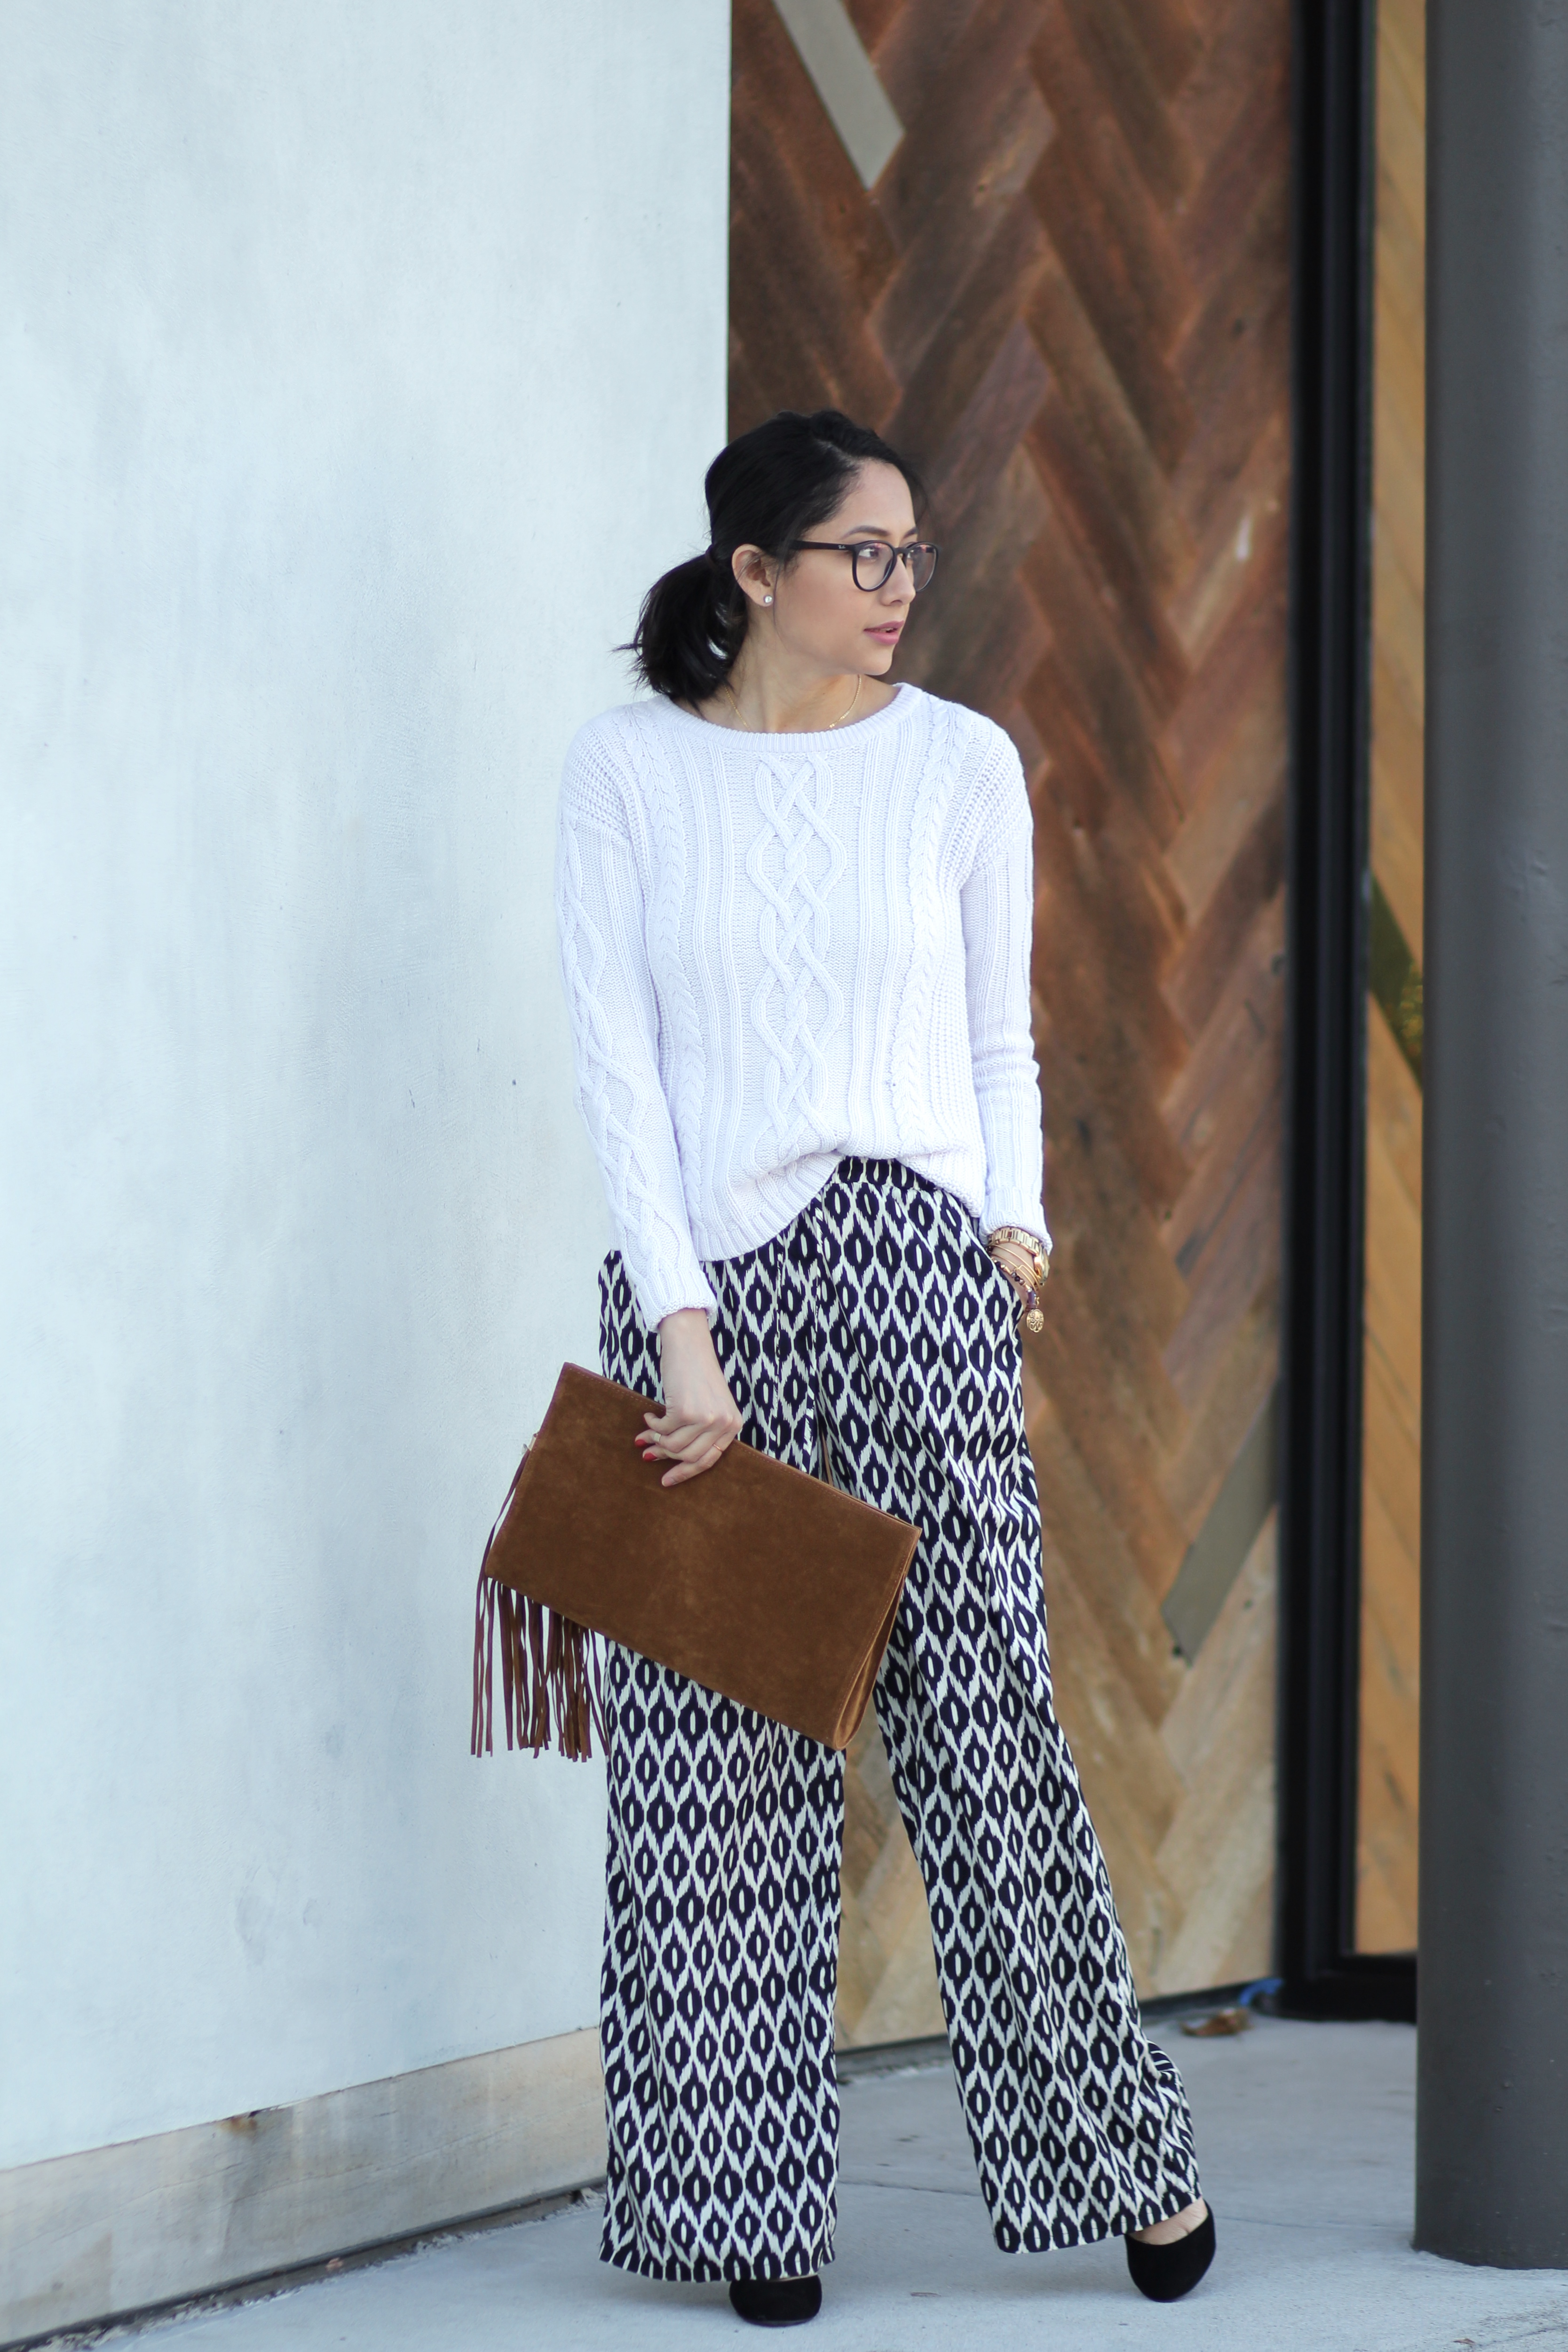 Printed pants and cable knit sweater outfit